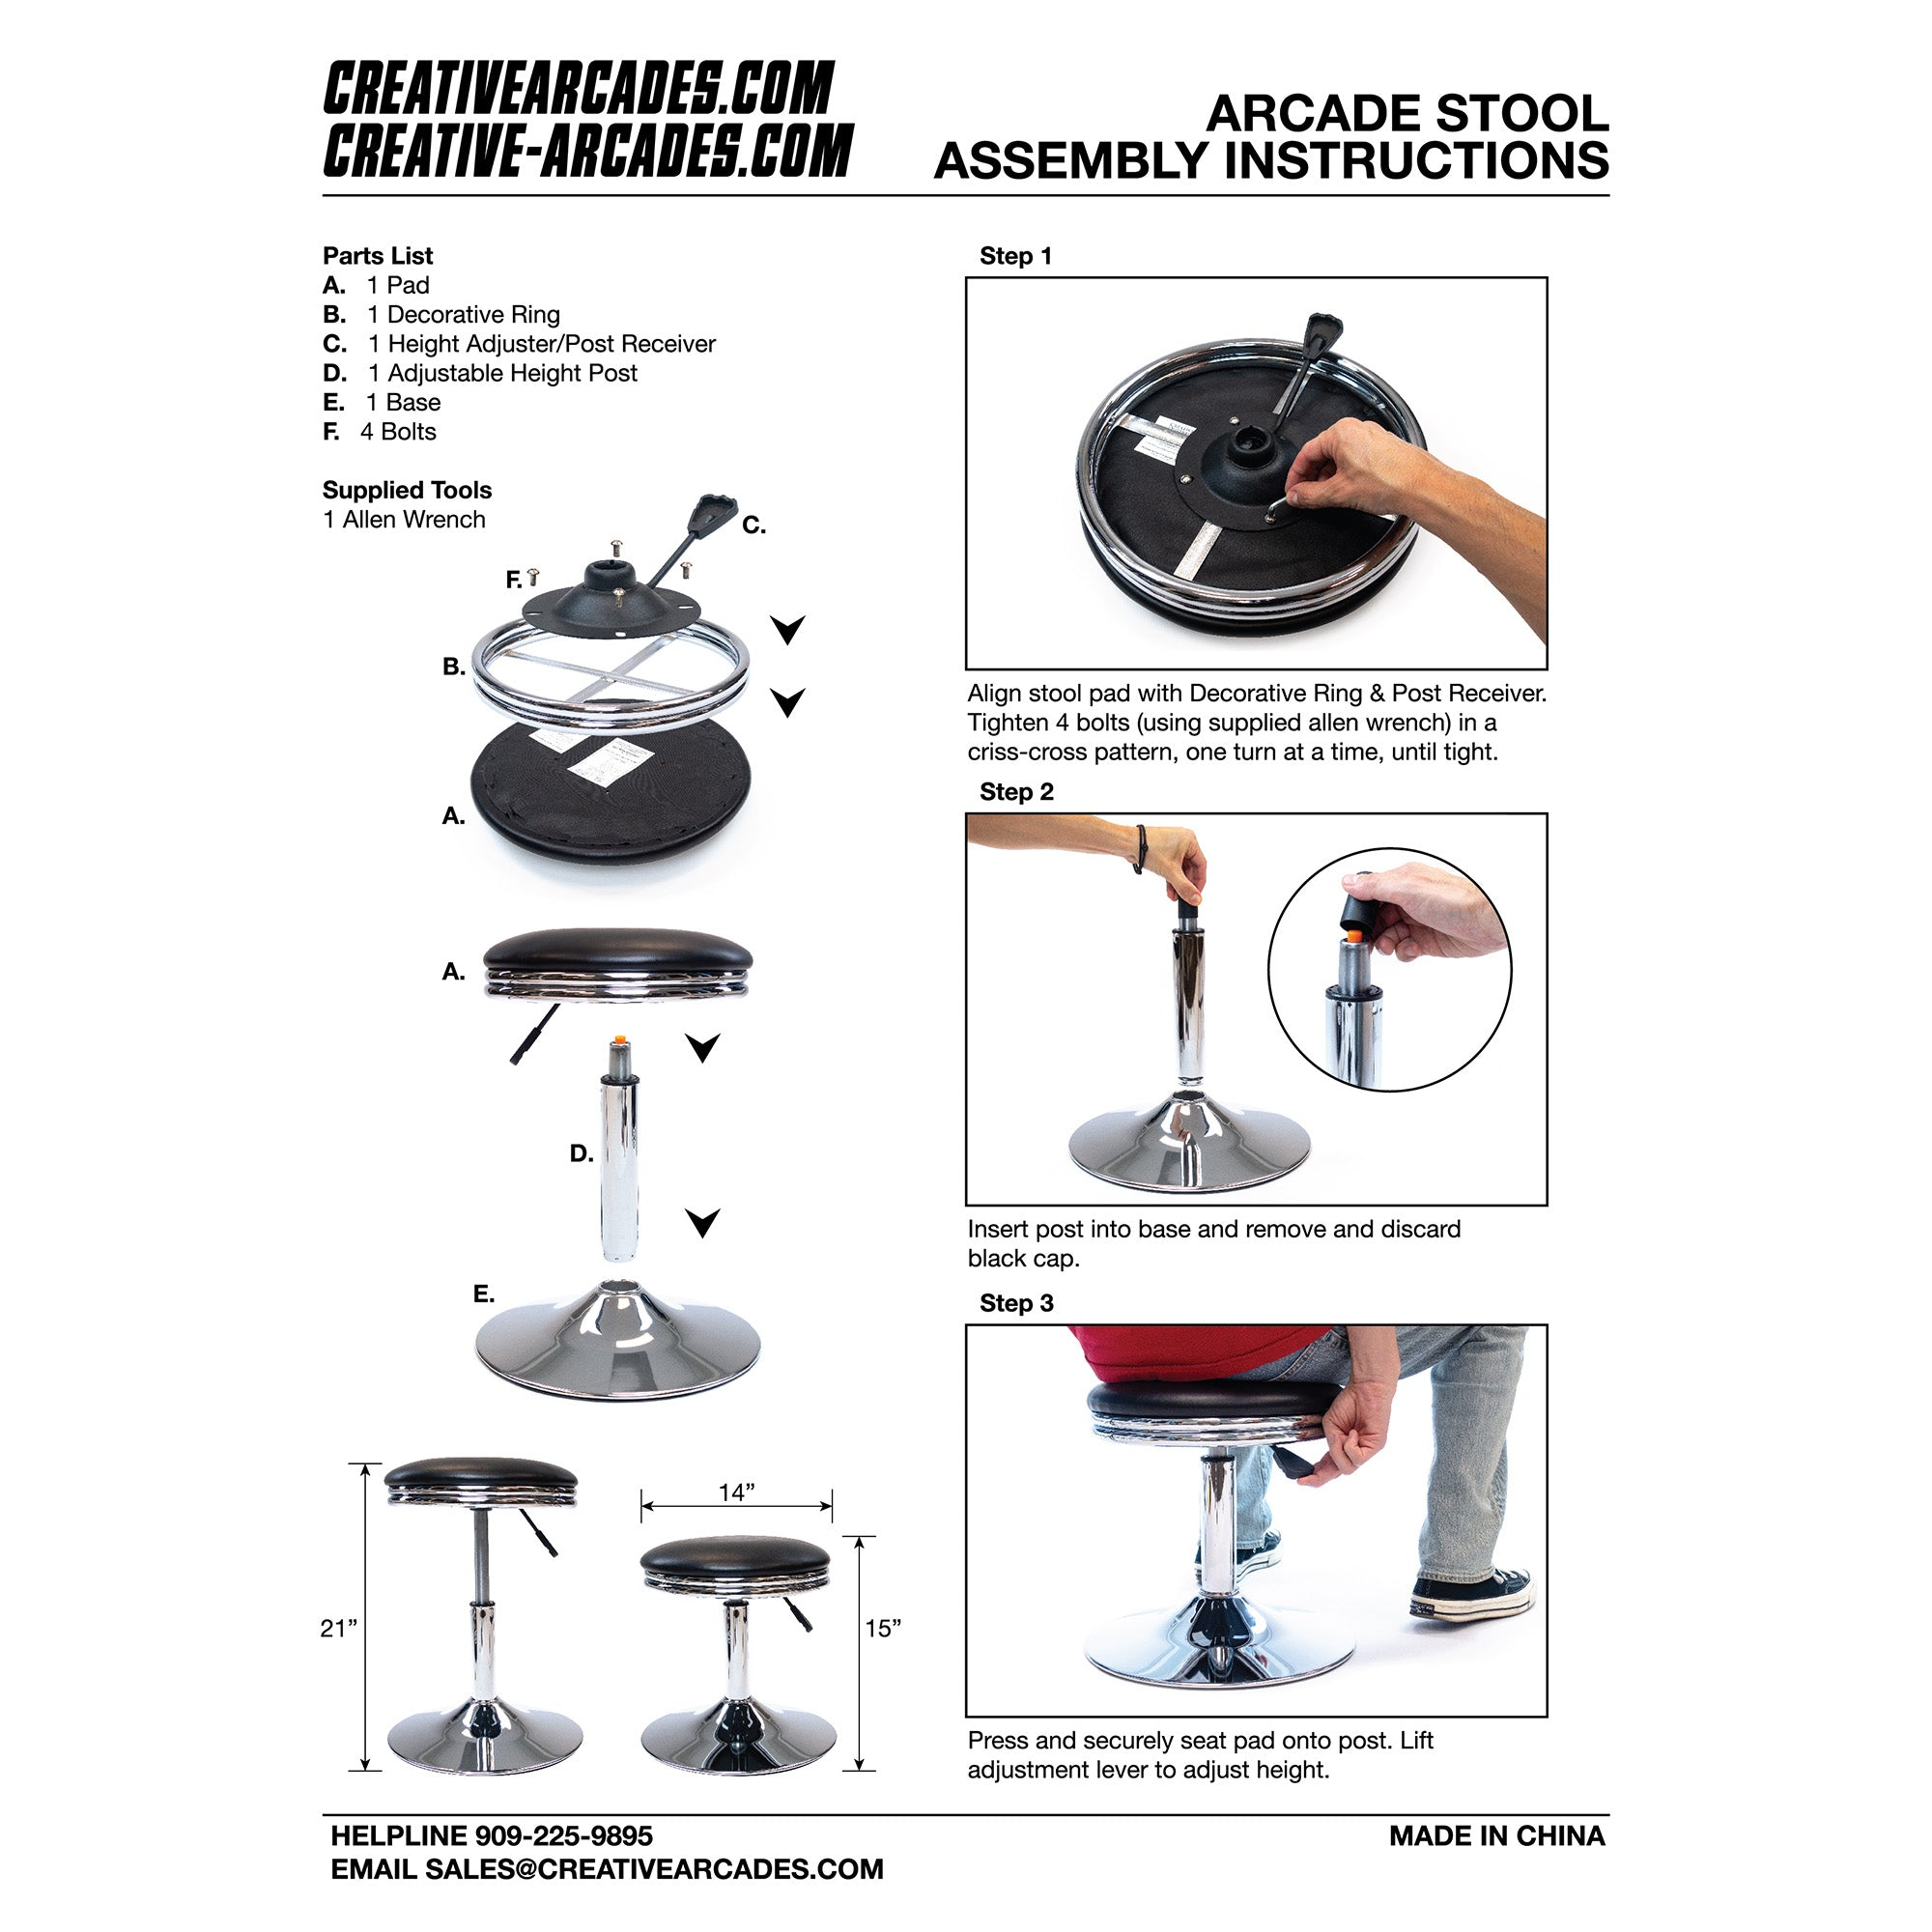 Arcade Adjustable Height Stool Assembly Instructions